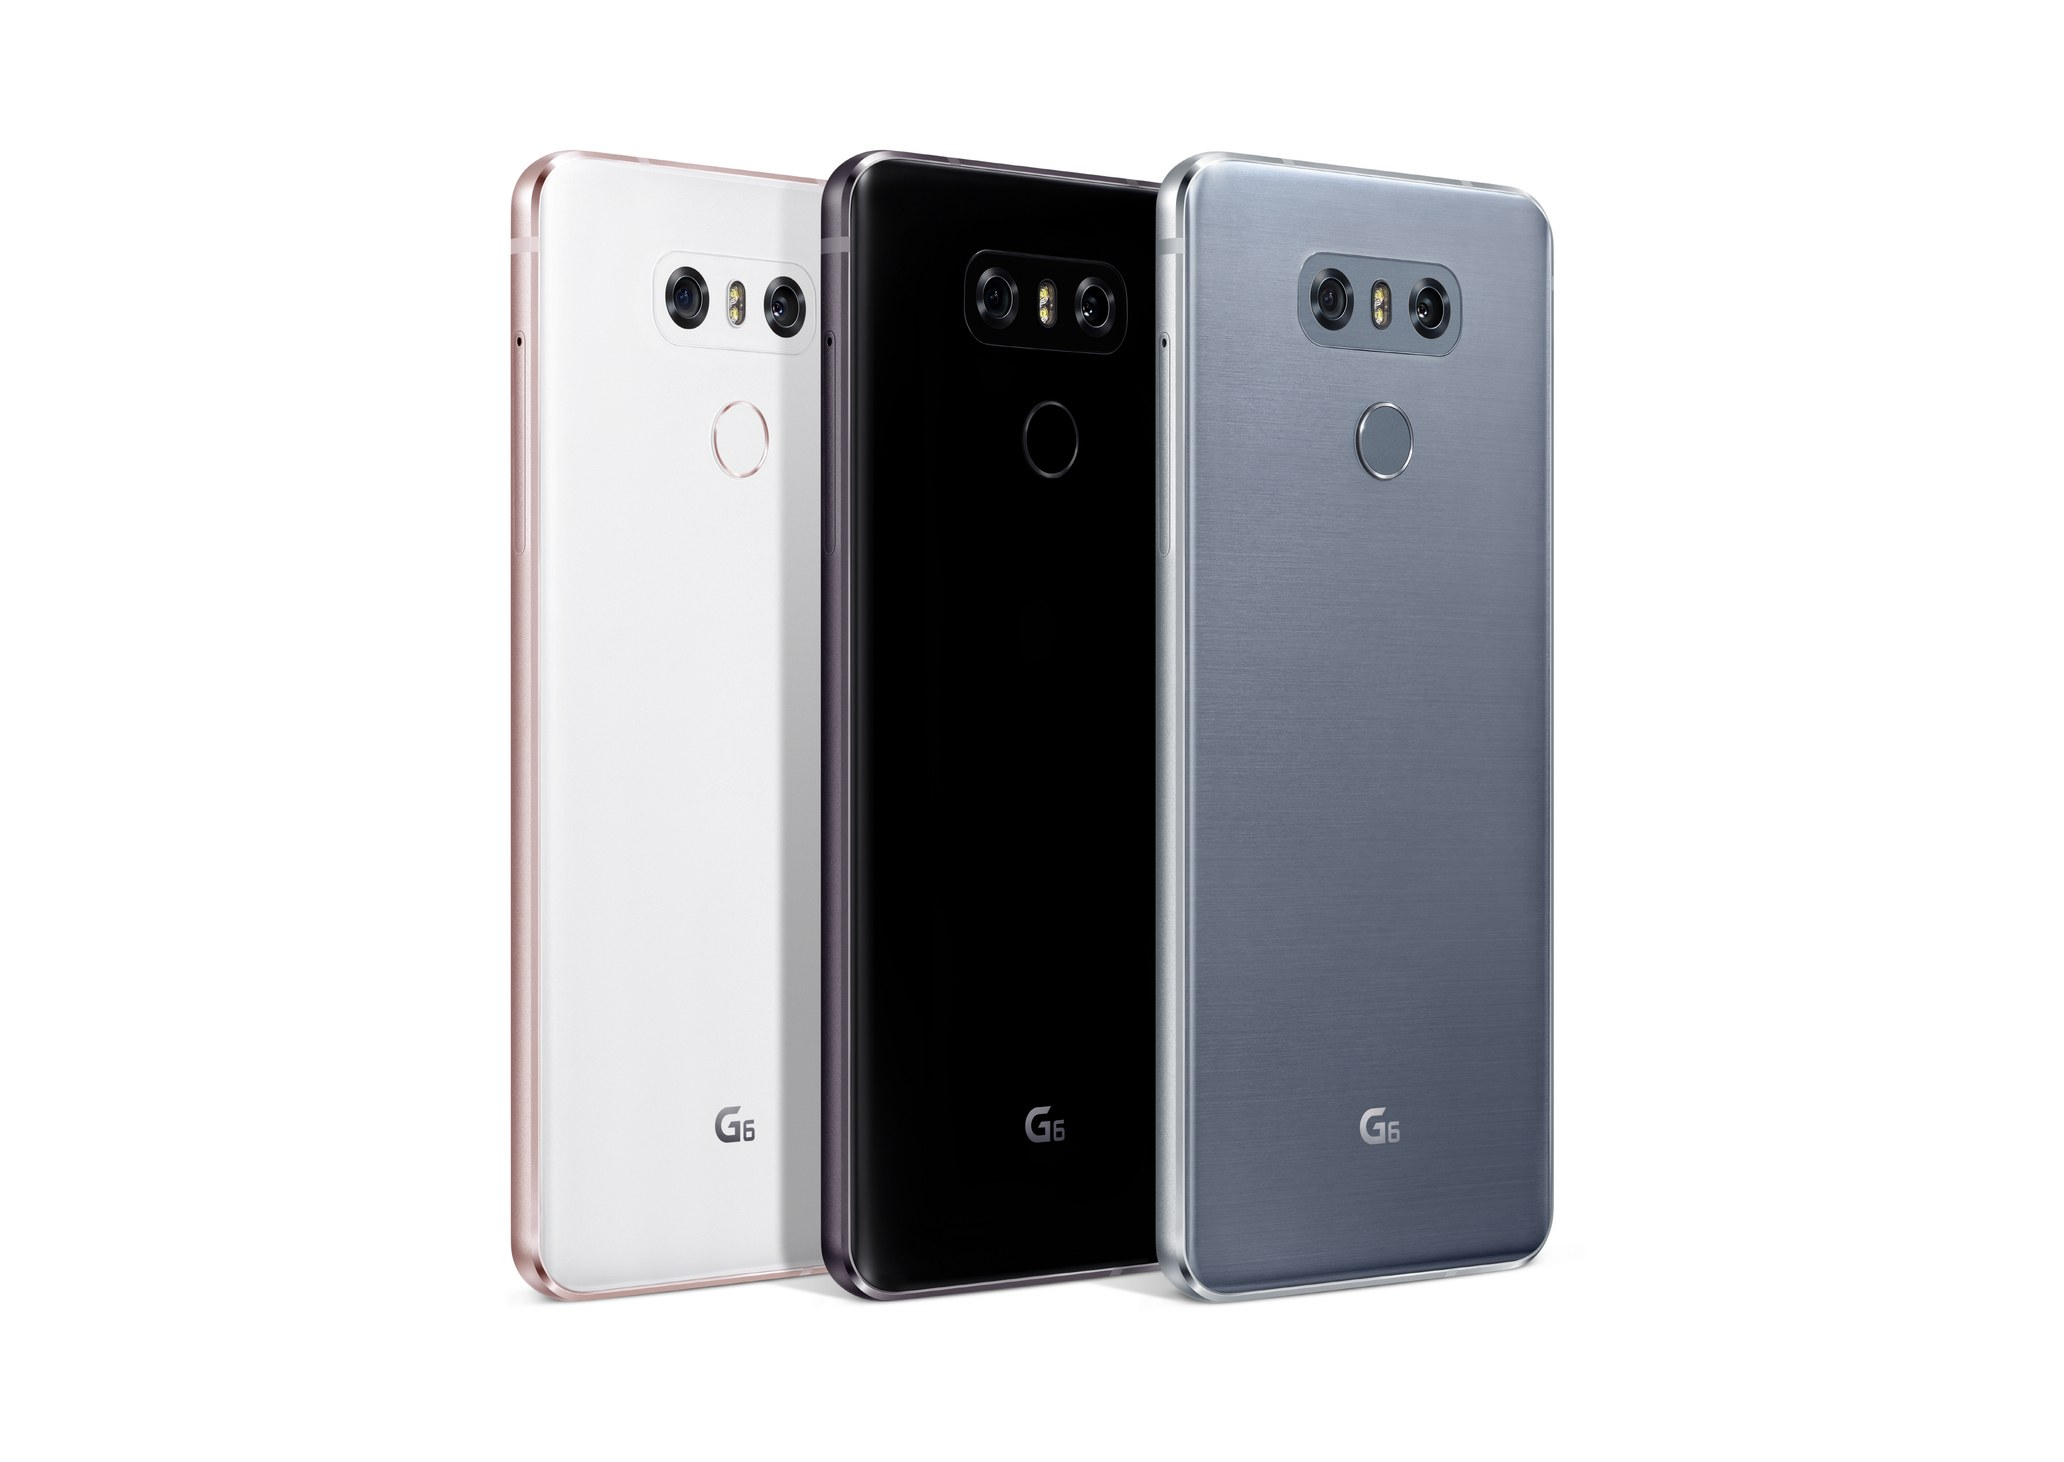 LG G6 031 Smartphone Research Groups IDC & Telsyte Contradict Each Other Over State Of Market